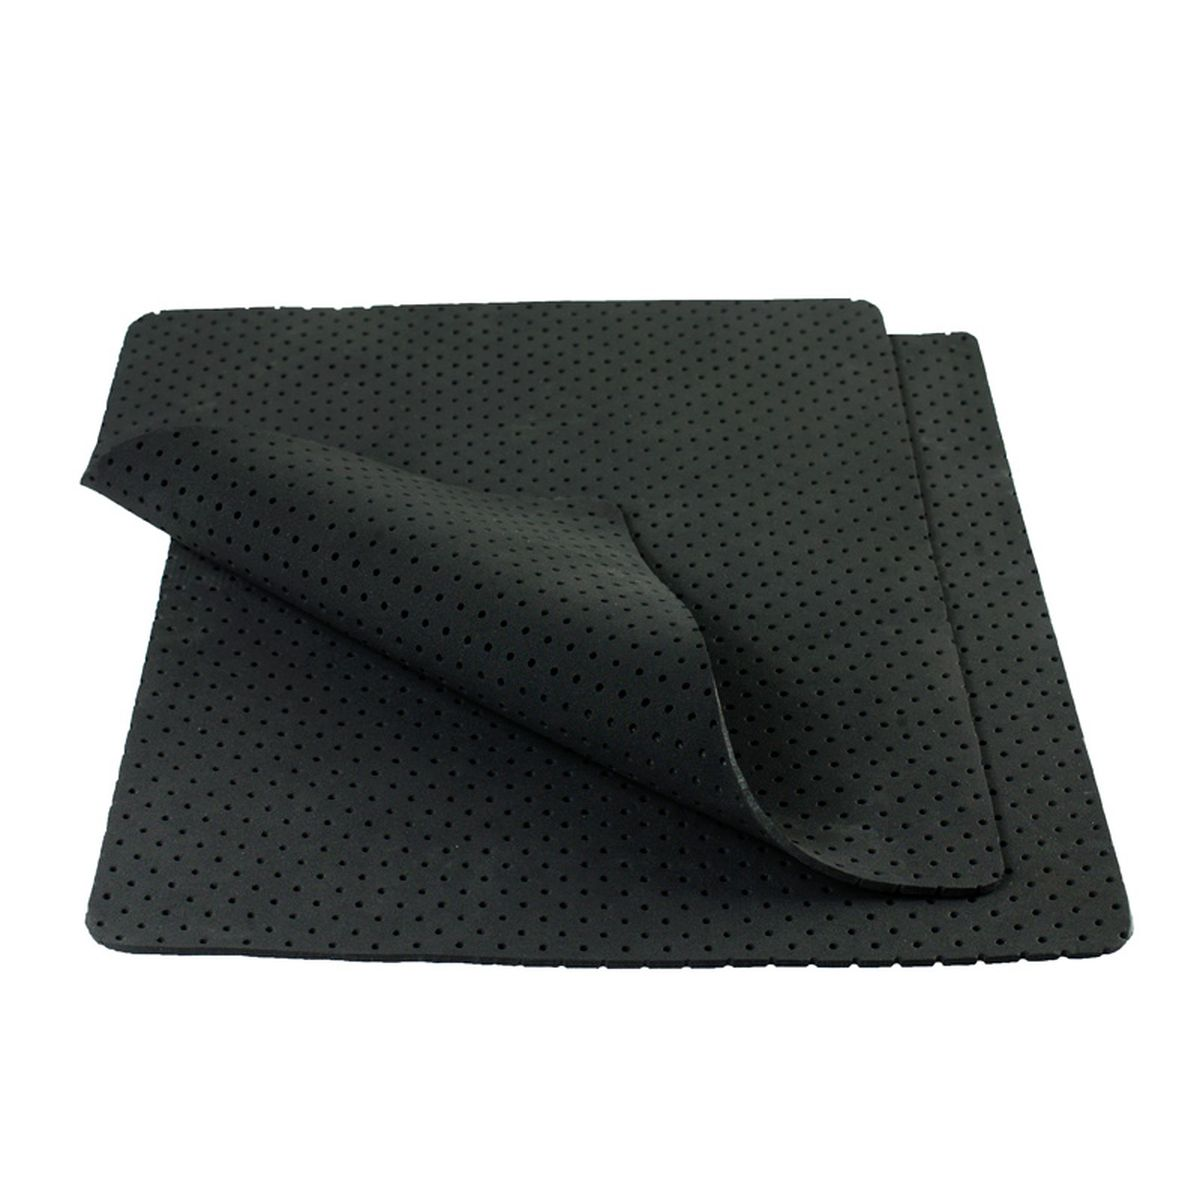 HorZe Neoprene Sheets with Perforated Holes